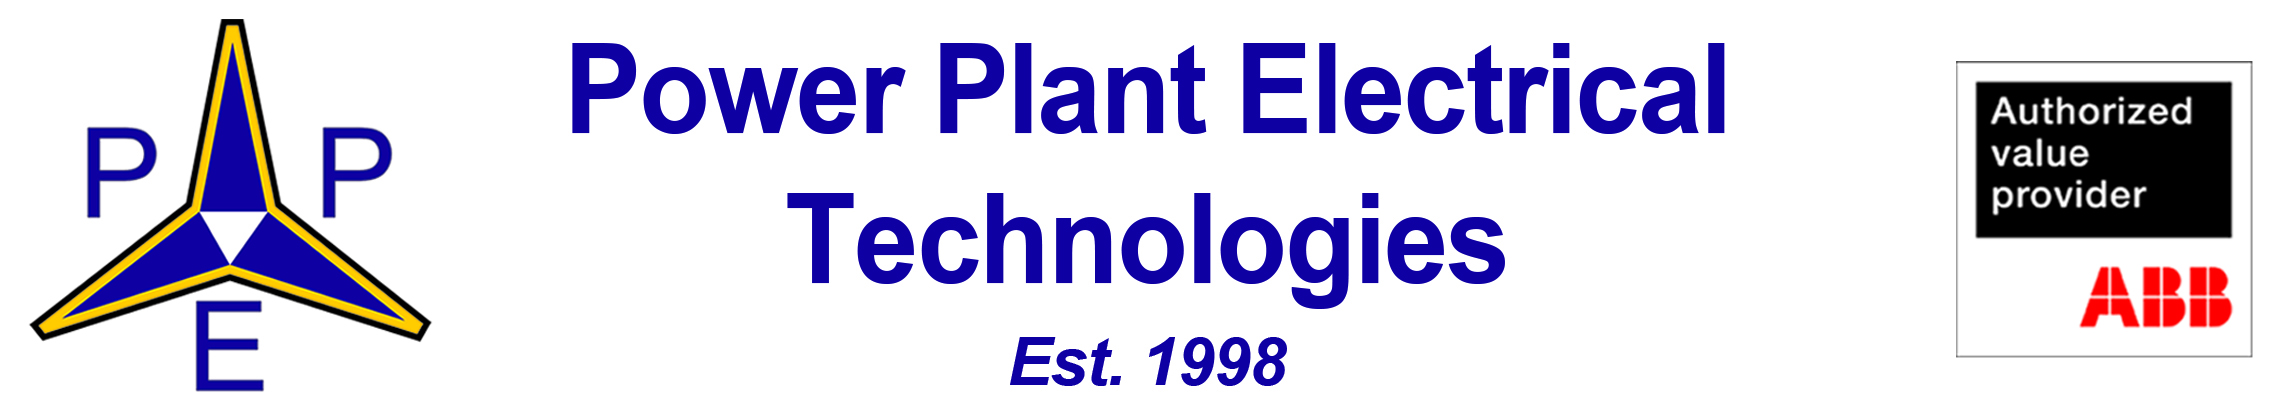 Power Plant Electrical Technologies Logo